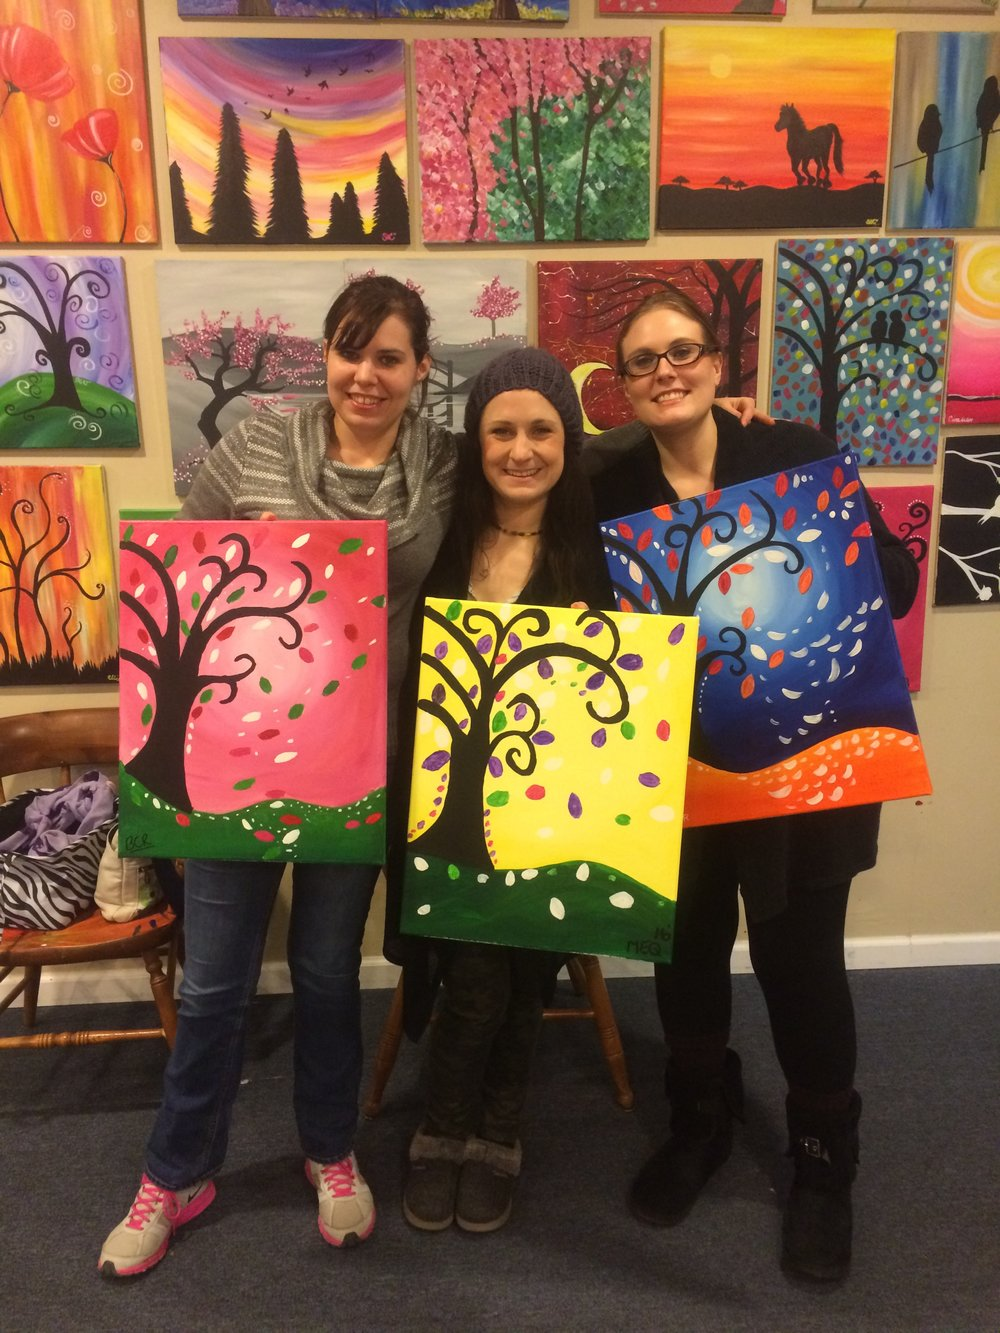 Paint Social I taught at Camp Simon Art Center